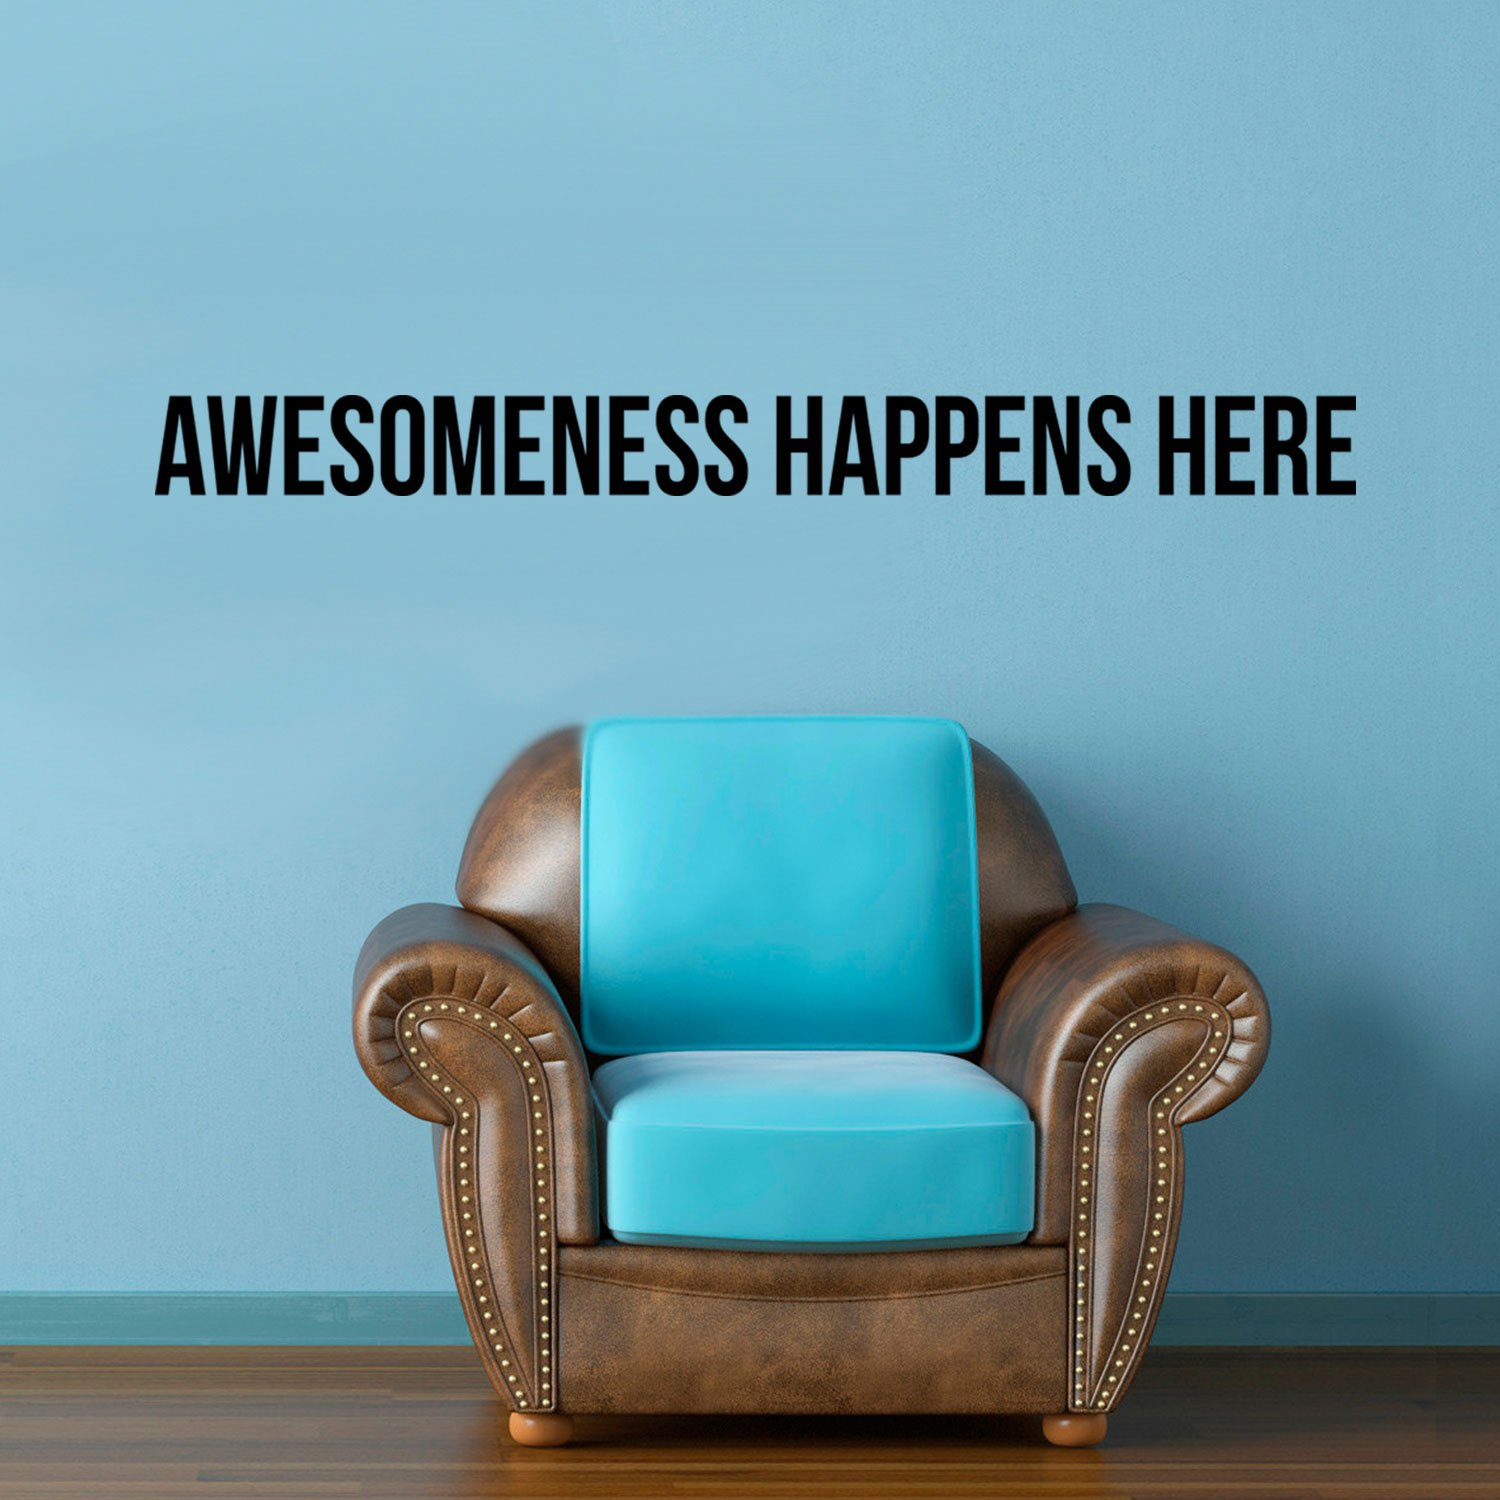 Awesomeness Happens Here - Inspirational Life Quotes Wall Art Vinyl Decal - 5'' X 60'' Decoration Vinyl Sticker - Motivational Wall Art Decal - Bedroom Living Room Decor - Trendy Wall Art